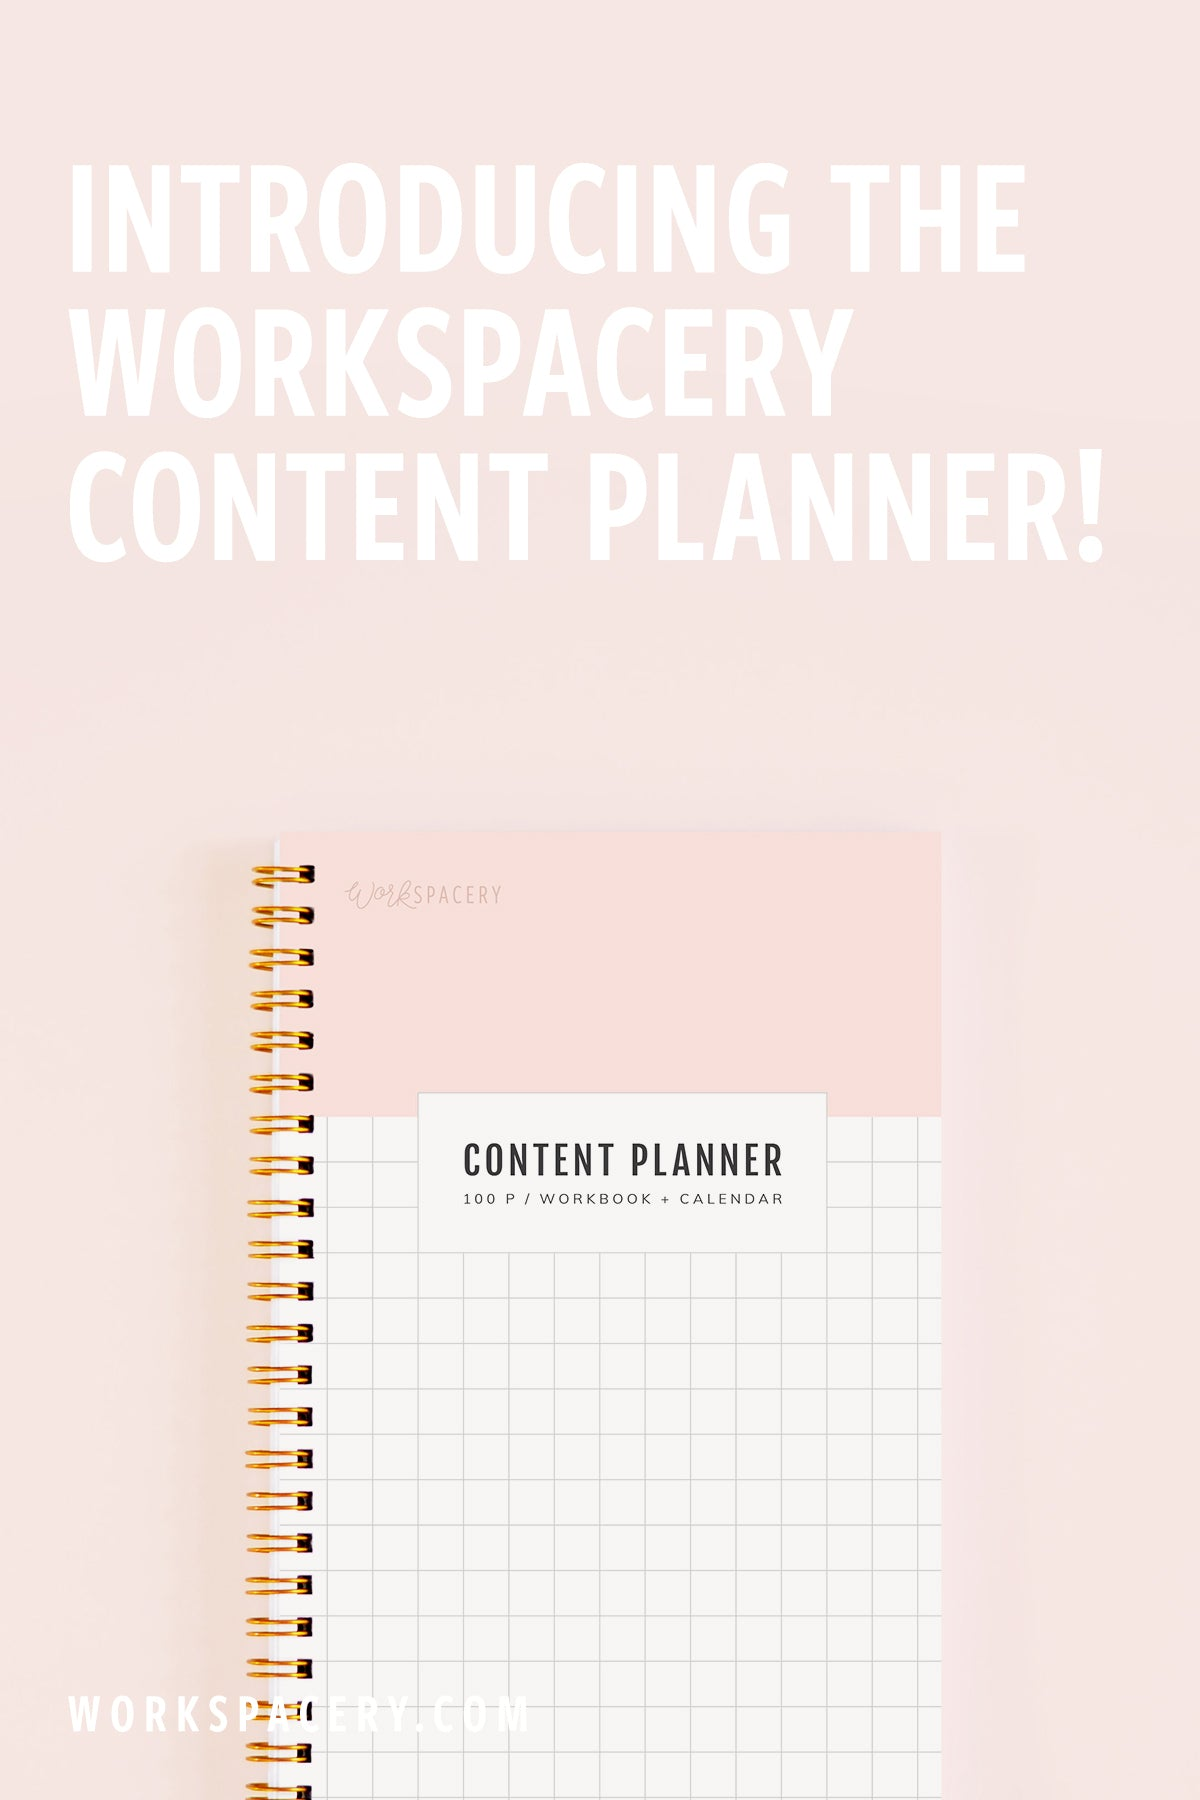 Introducing the Workspacery Content Planner